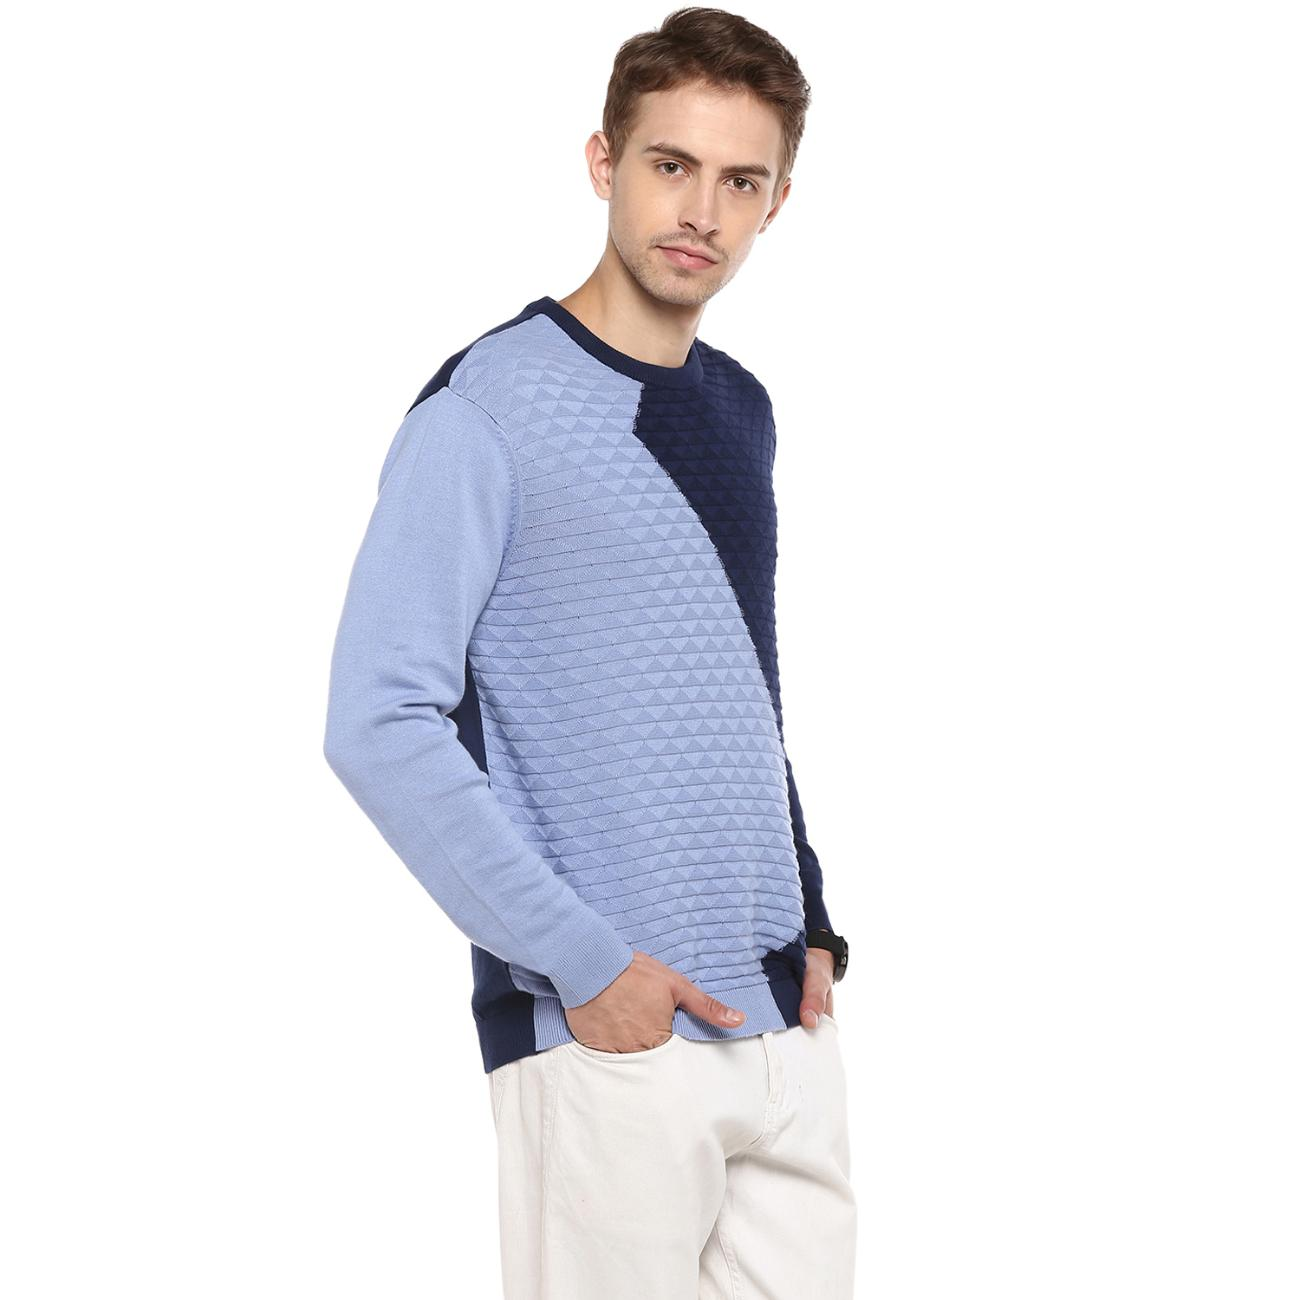 Shop Blue Colour Blocked Sweater from Red Chief